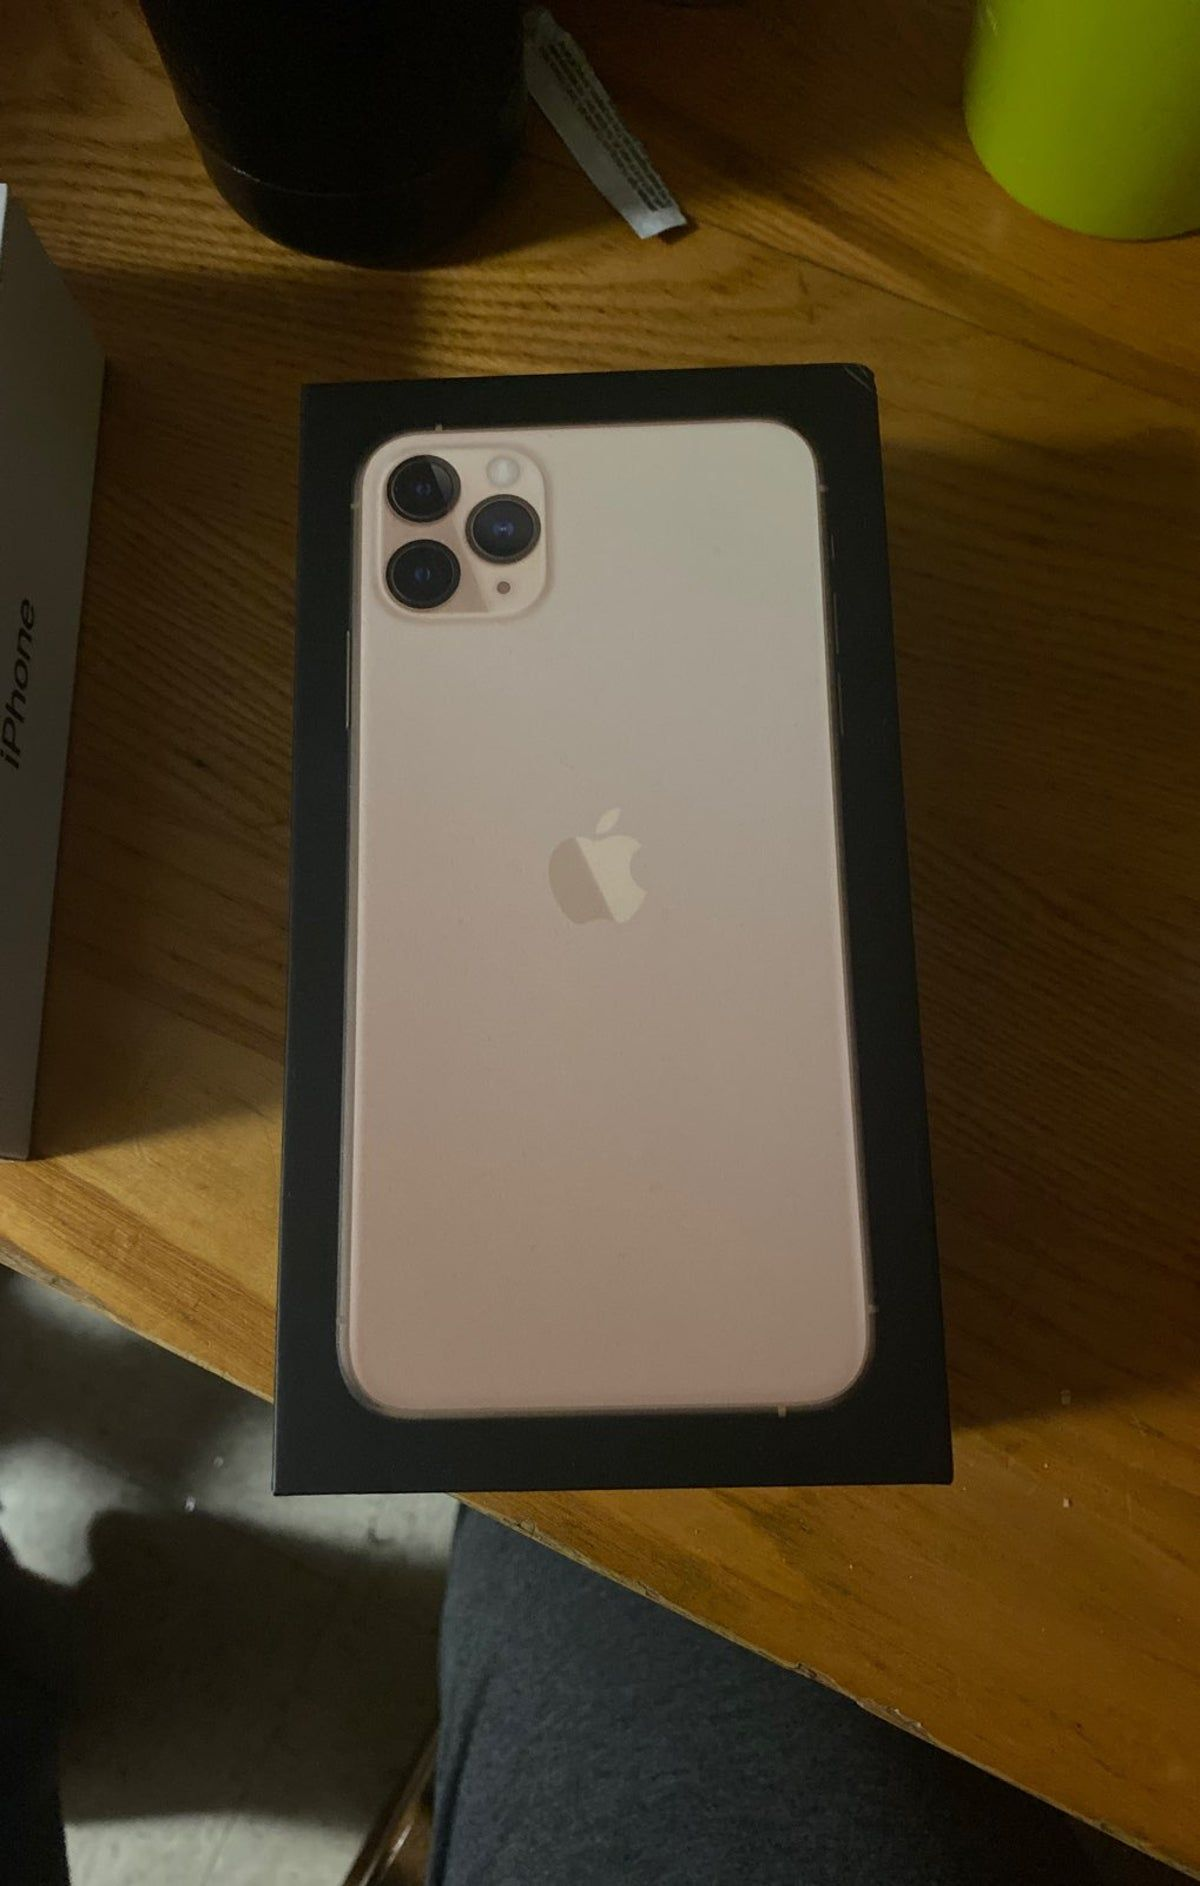 Iphone 11 Pro Max Box In 2020 Phone Case Diy Paint Iphone 11 Apple Store Gift Card